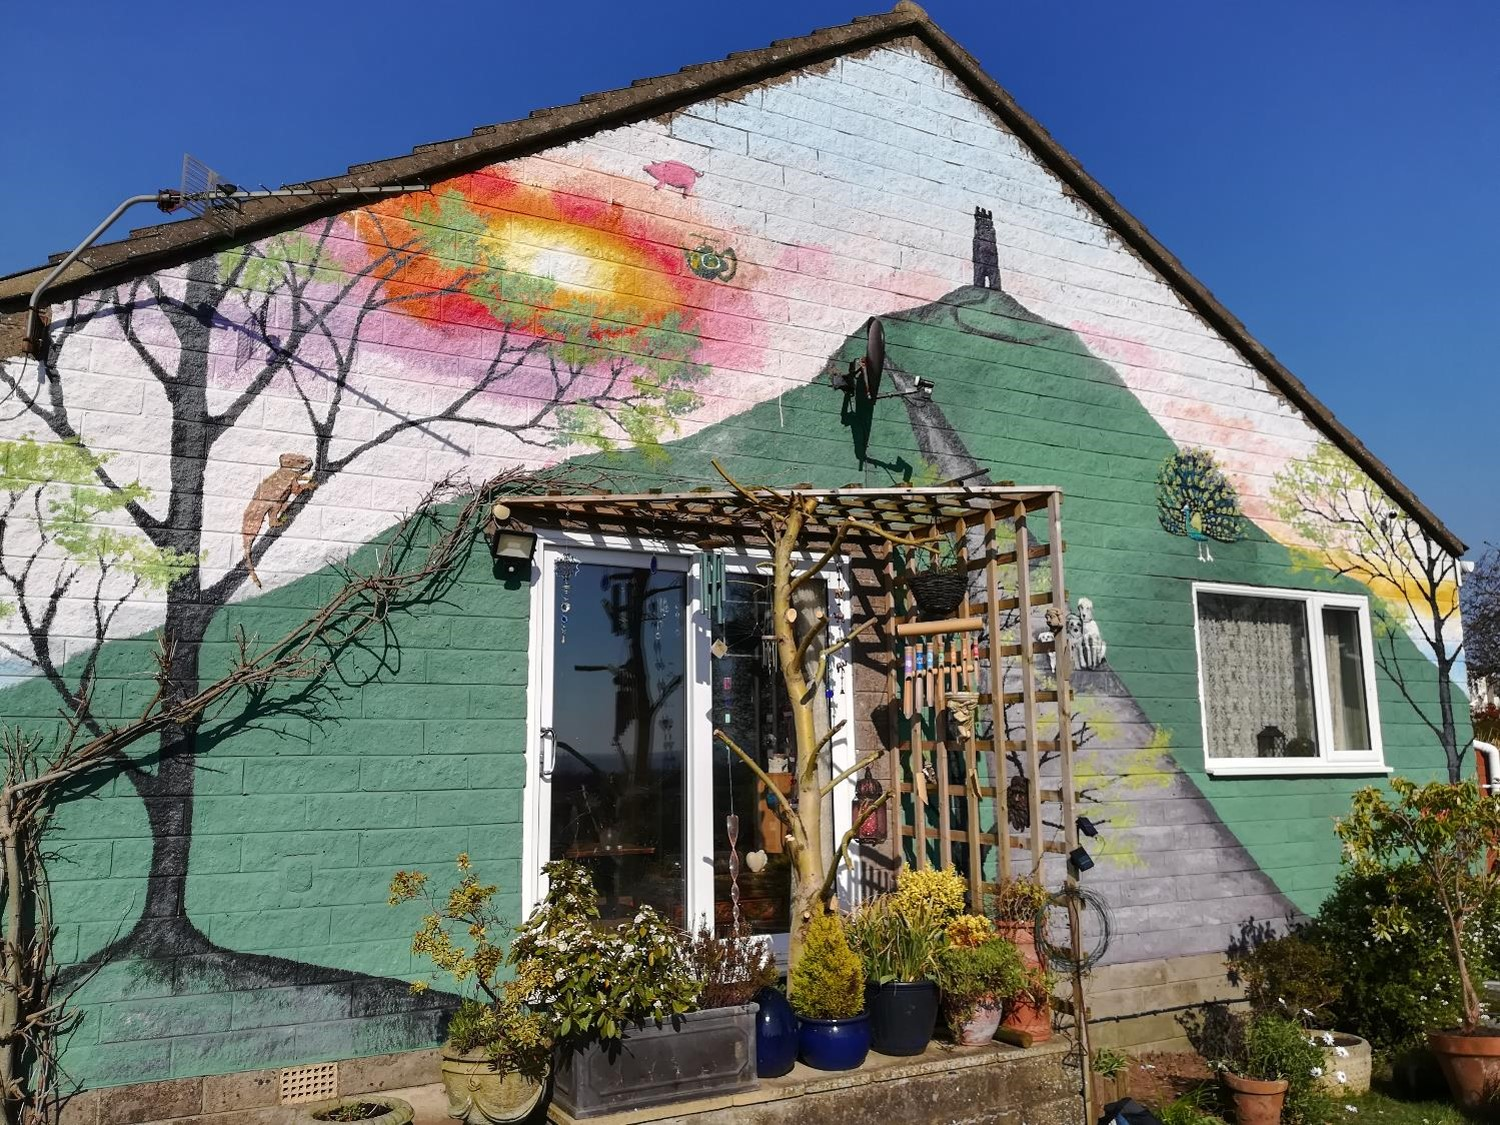 Painted home in Glastonbury featuring a mural of the Glastonbury Tor